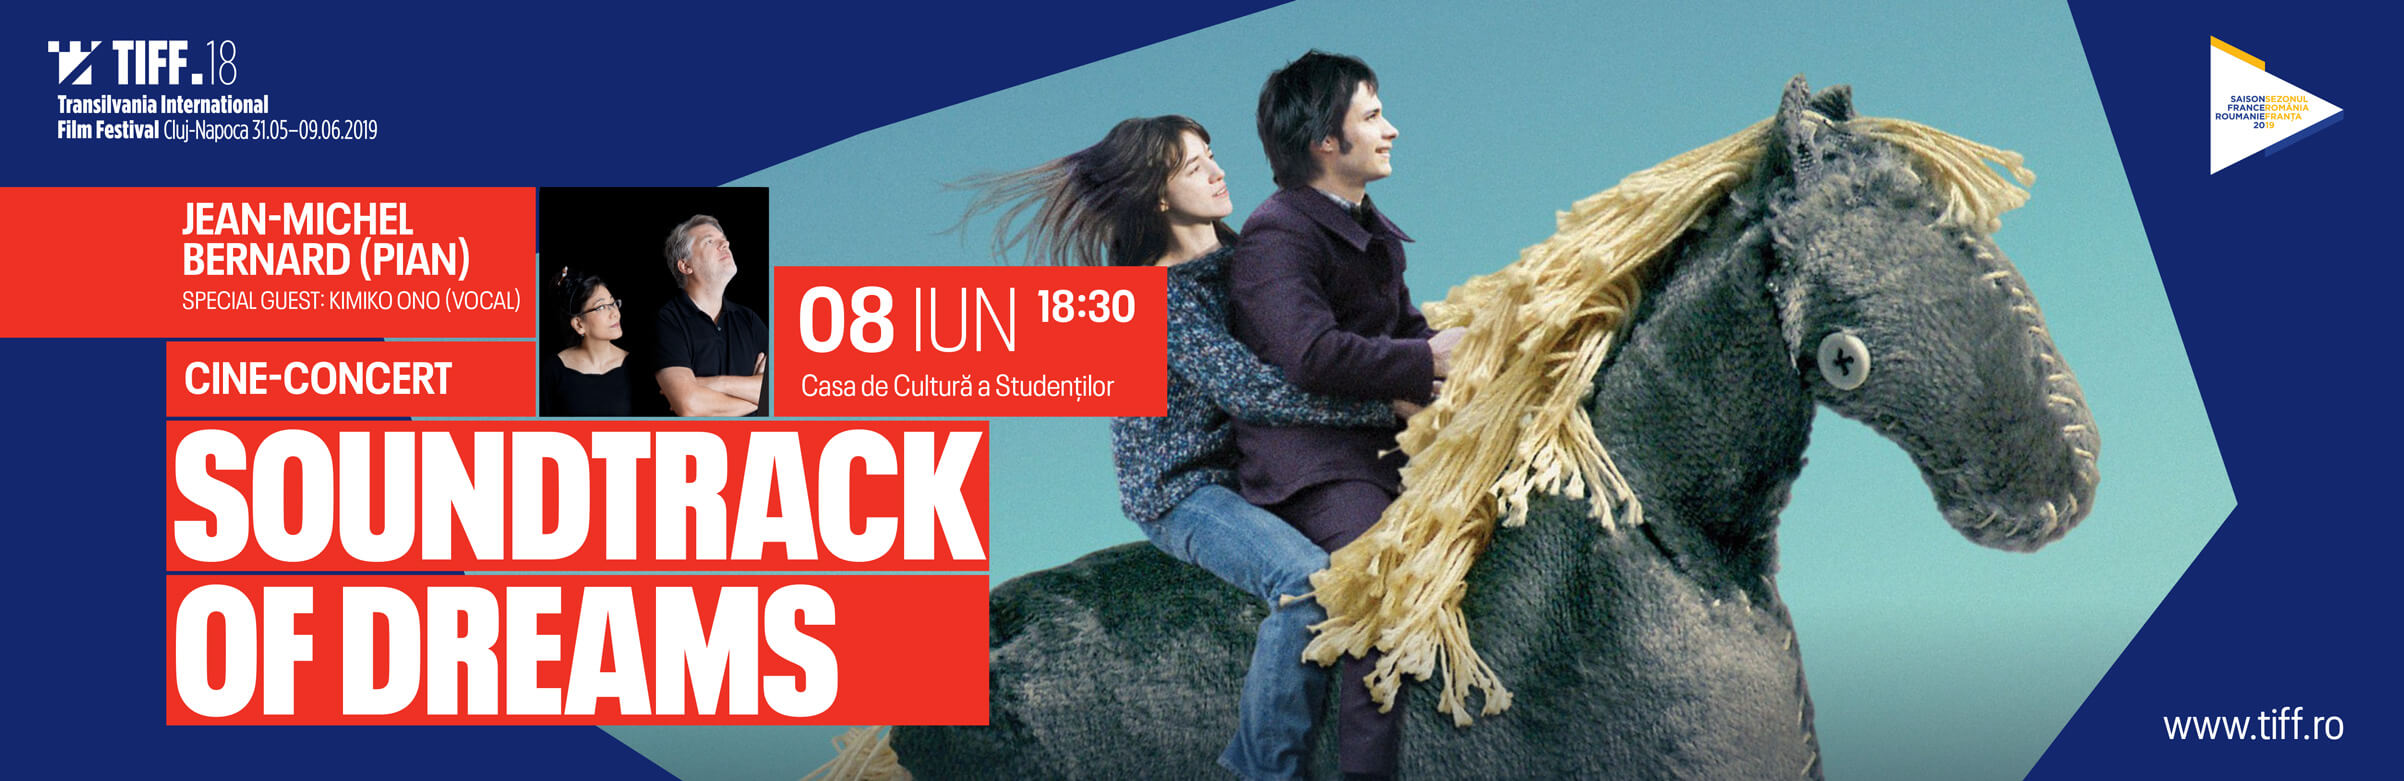 "CINE-CONCERT: ""SOUNDTRACK OF DREAMS"", ACOMPANIAT LIVE DE JEAN-MICHEL BERNARD"